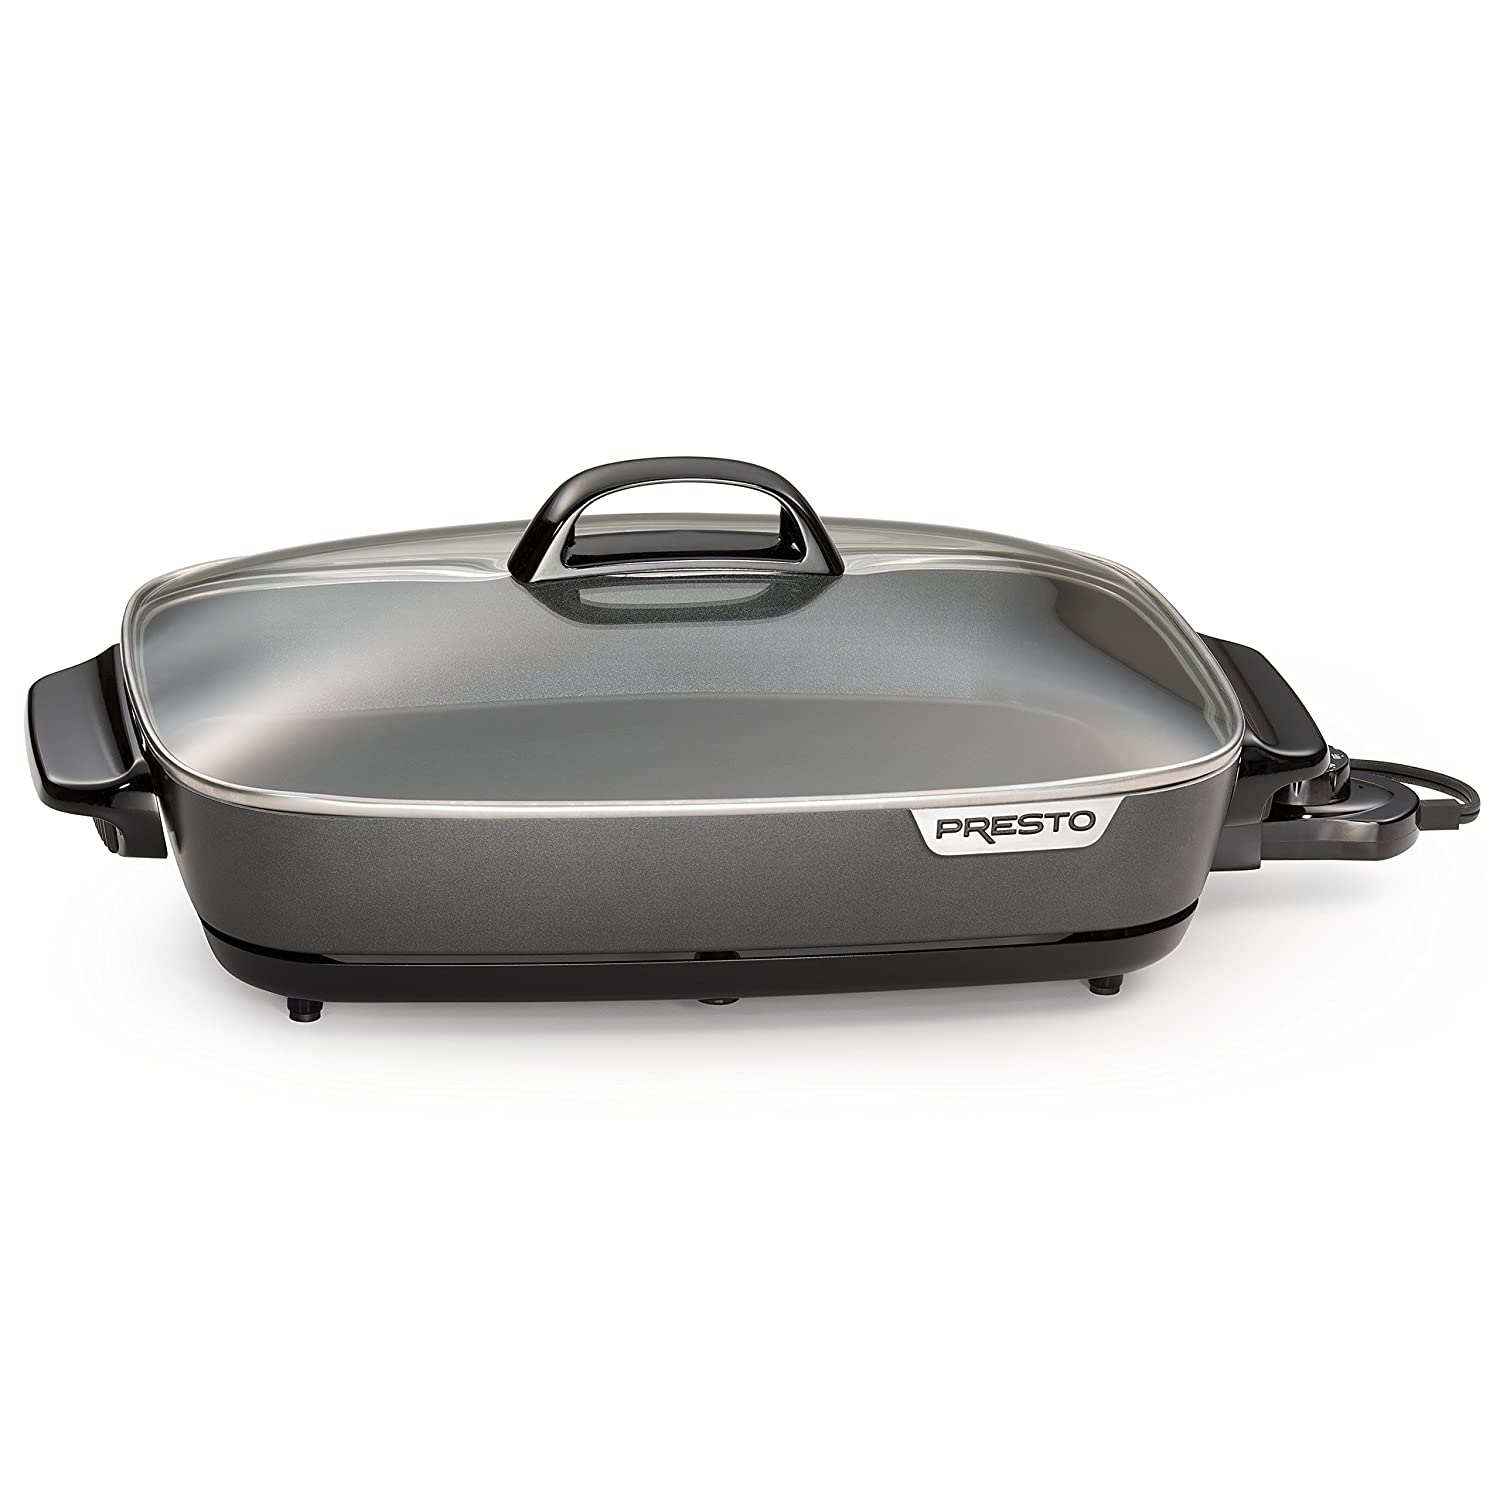 Presto 06858 Slimline Skillet with Glass Cover, Black